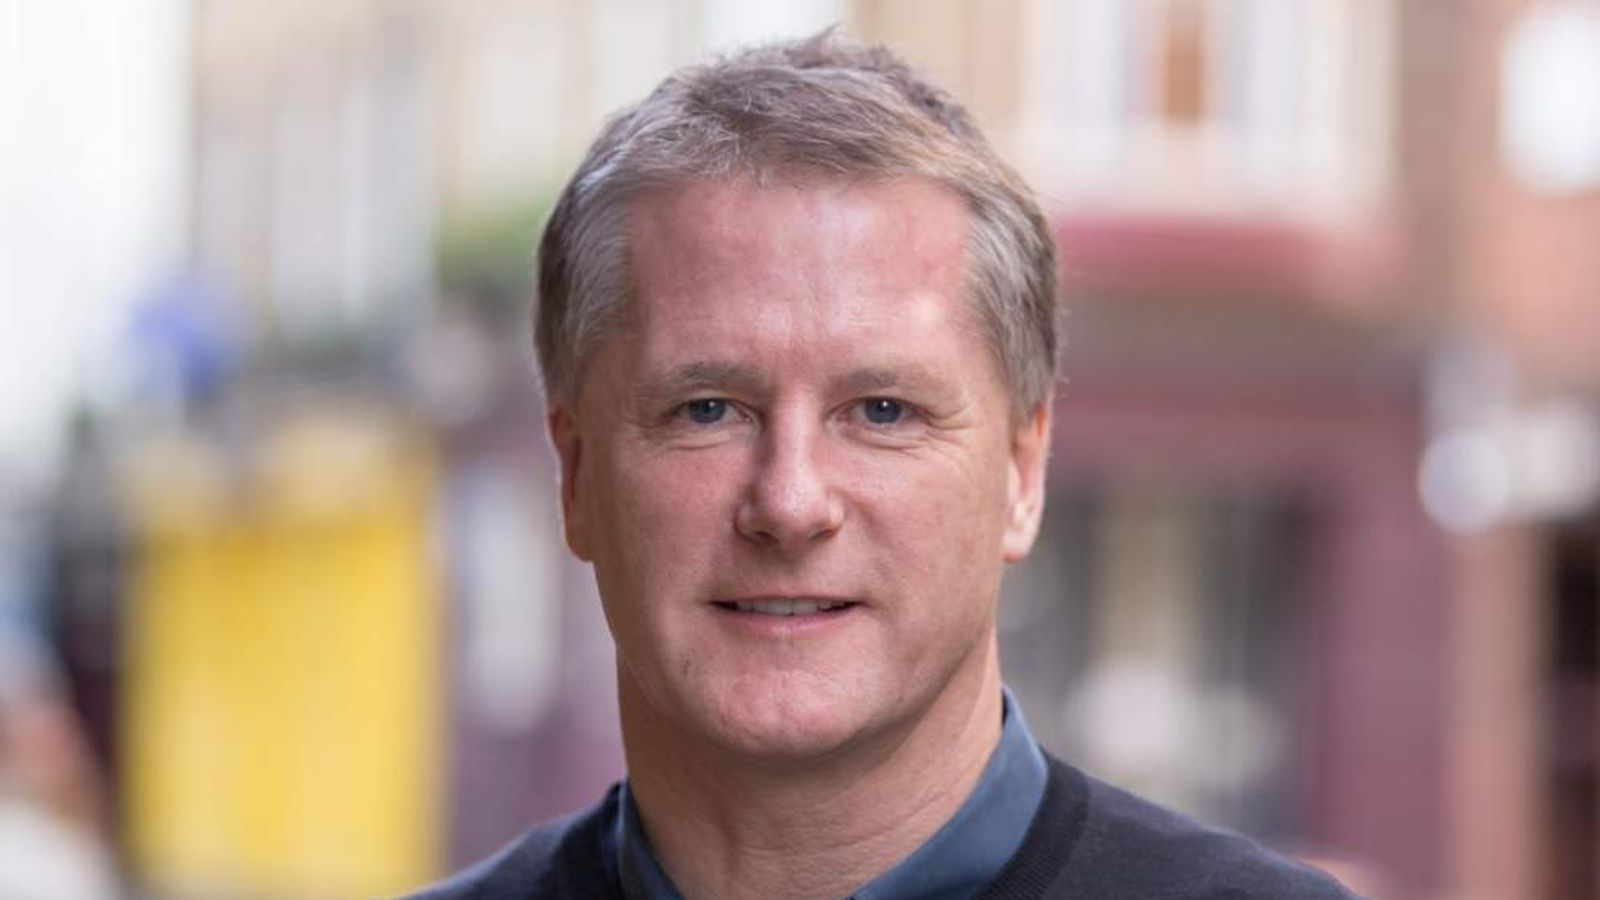 Morrisons chief executive David Potts was appointed in February 2015